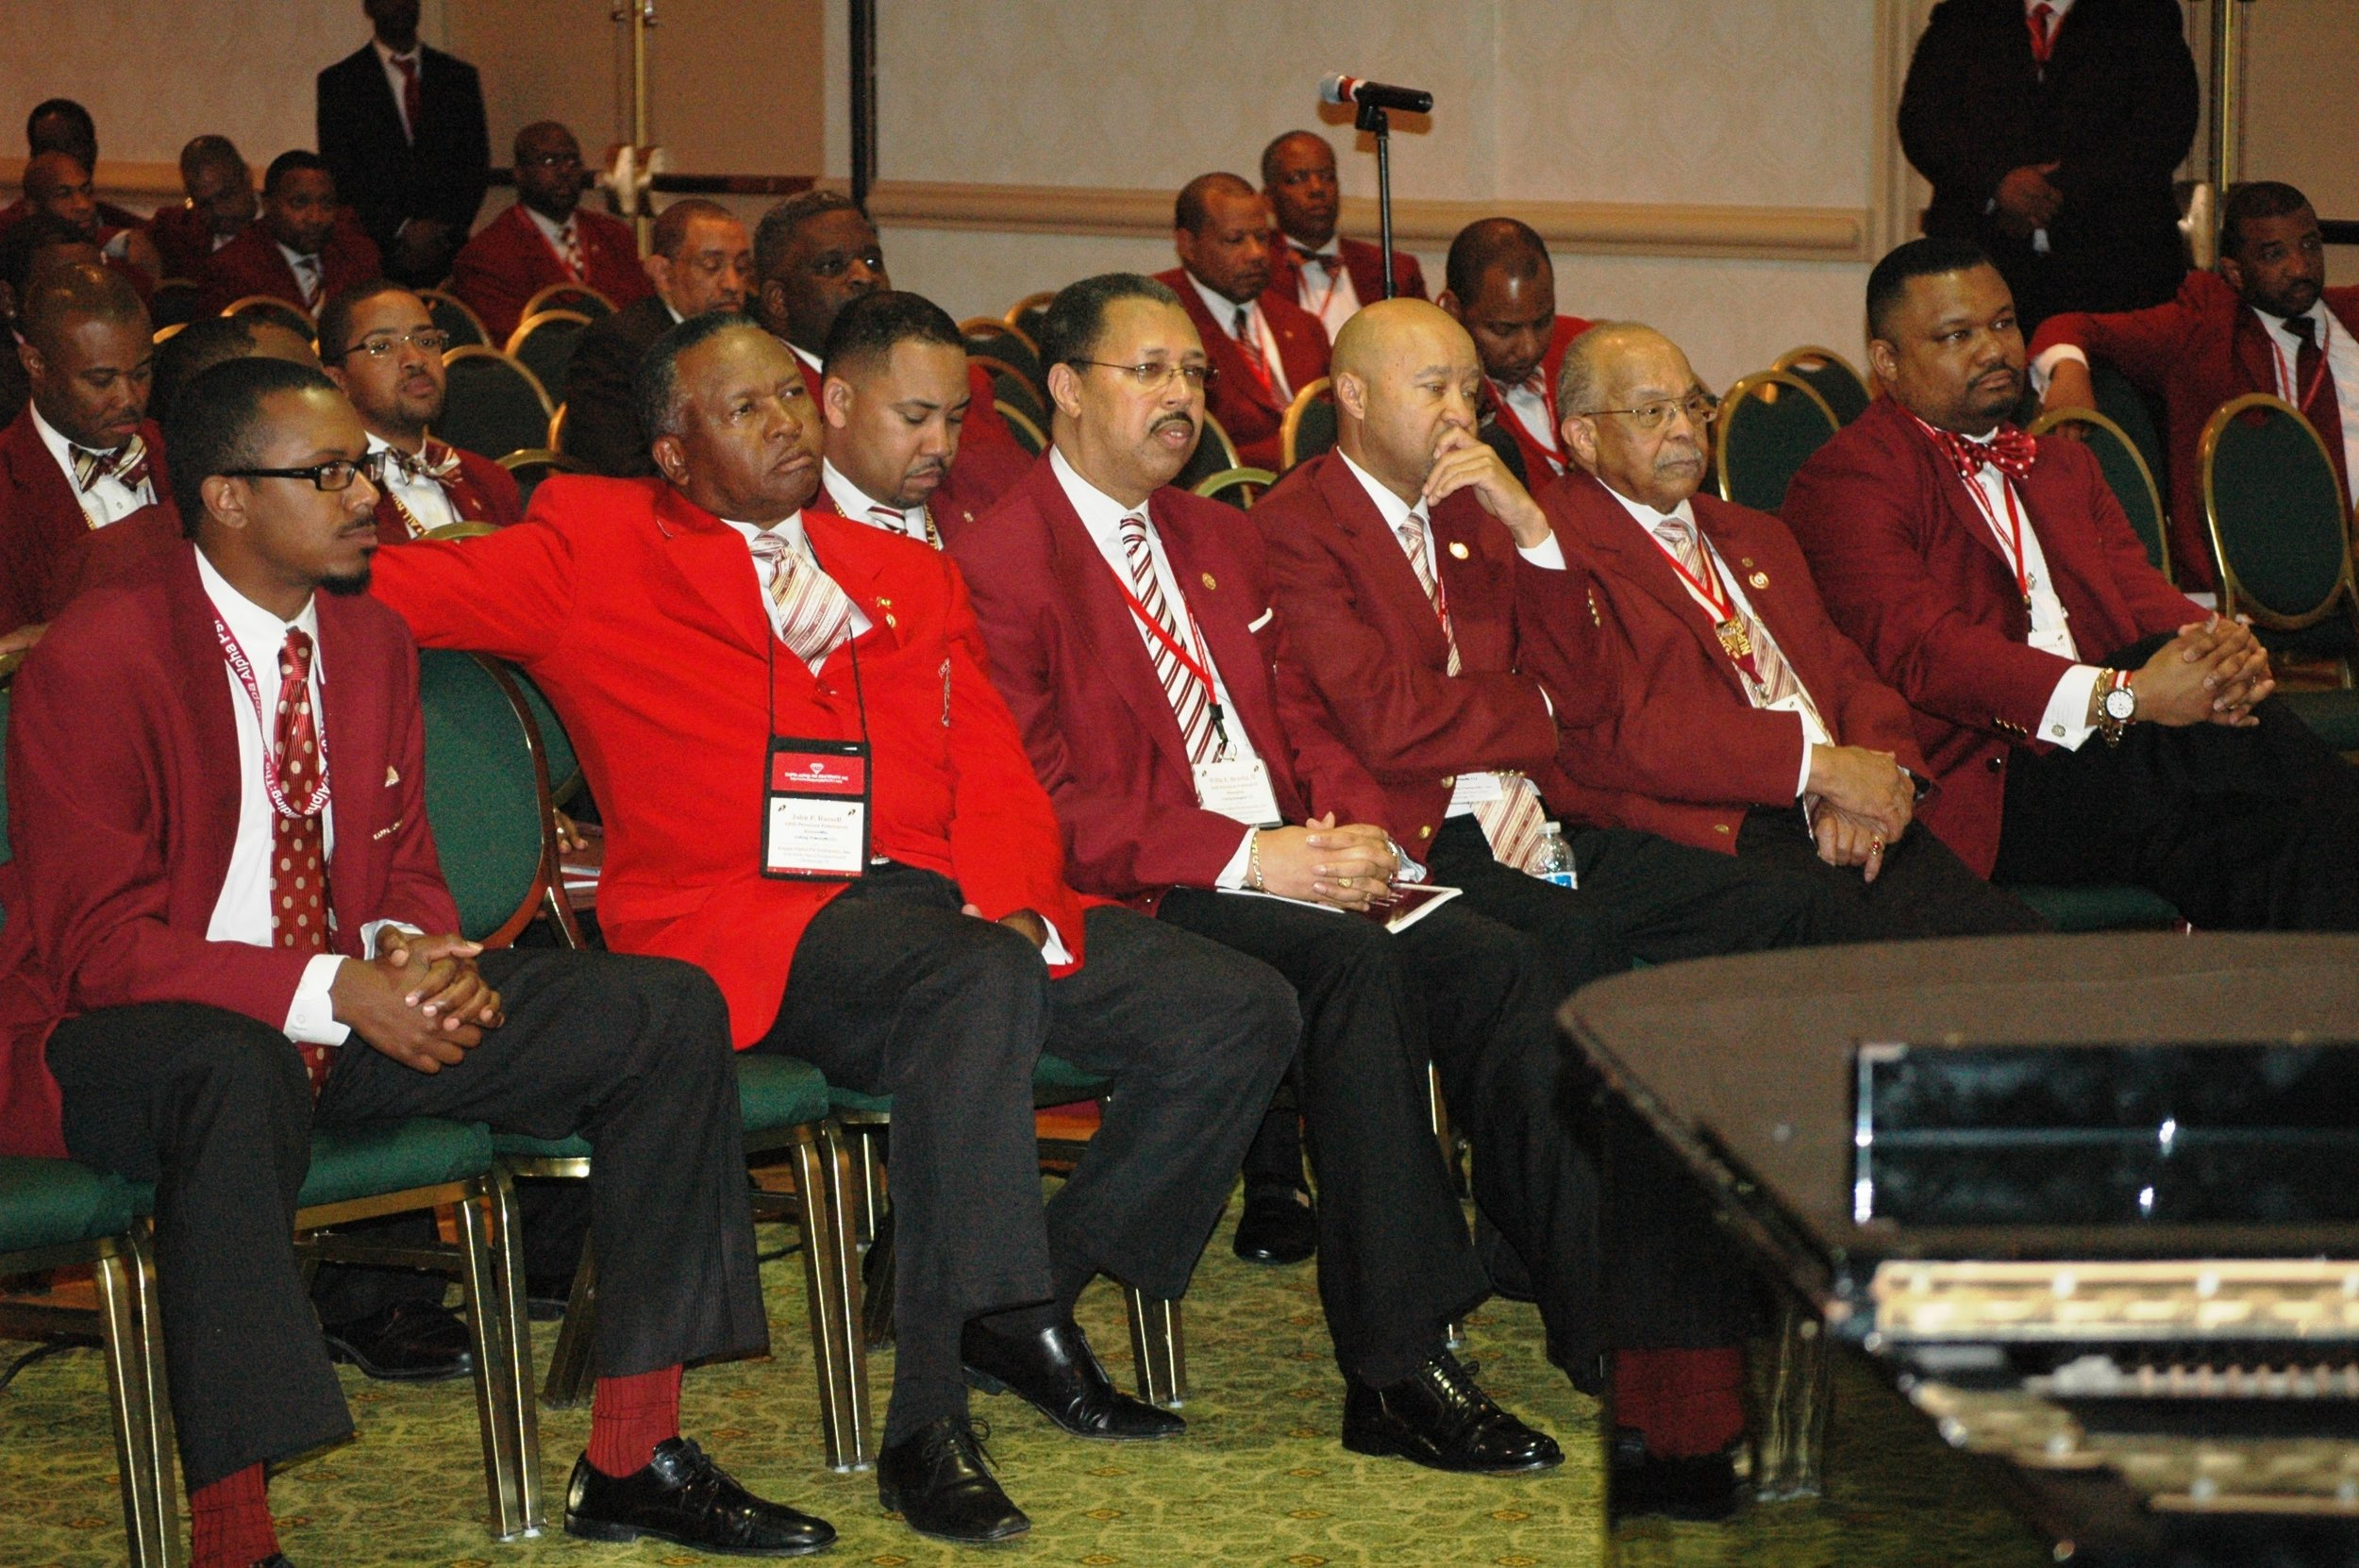 67th Province Council - CHATTANOOGA, TN